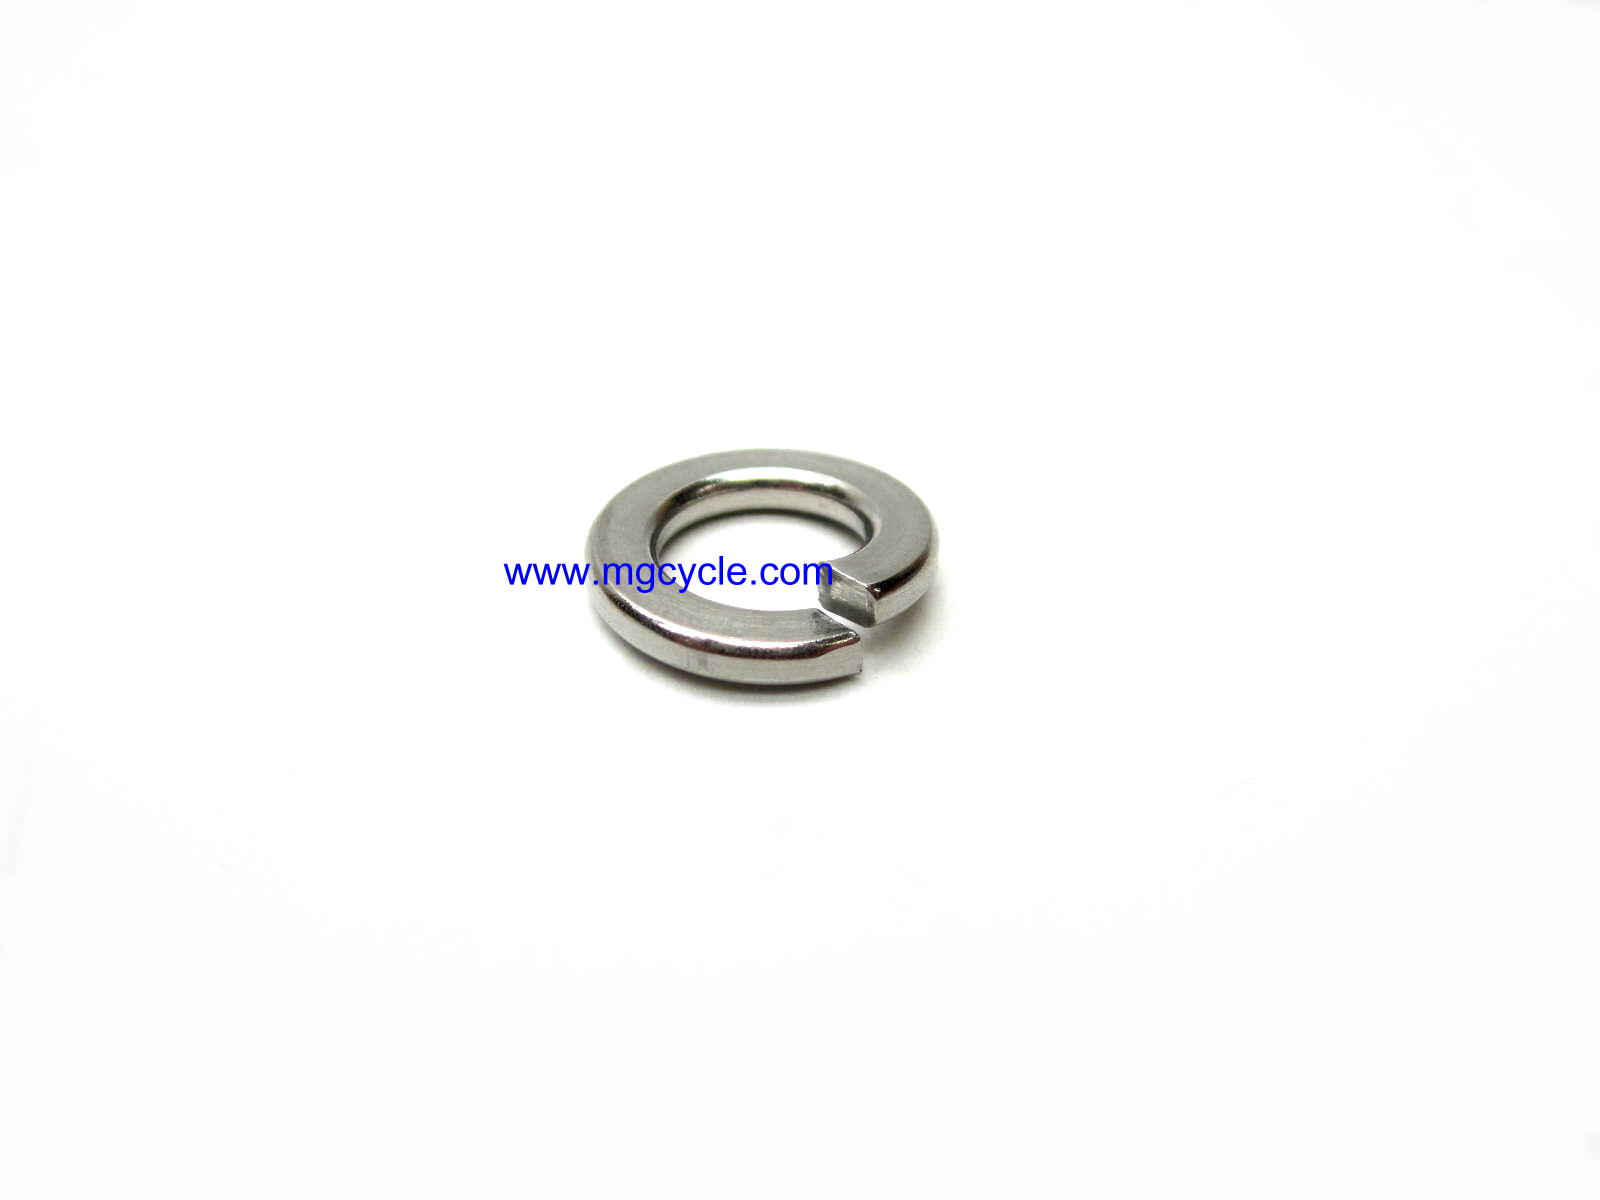 8mm split lock washer, stainless